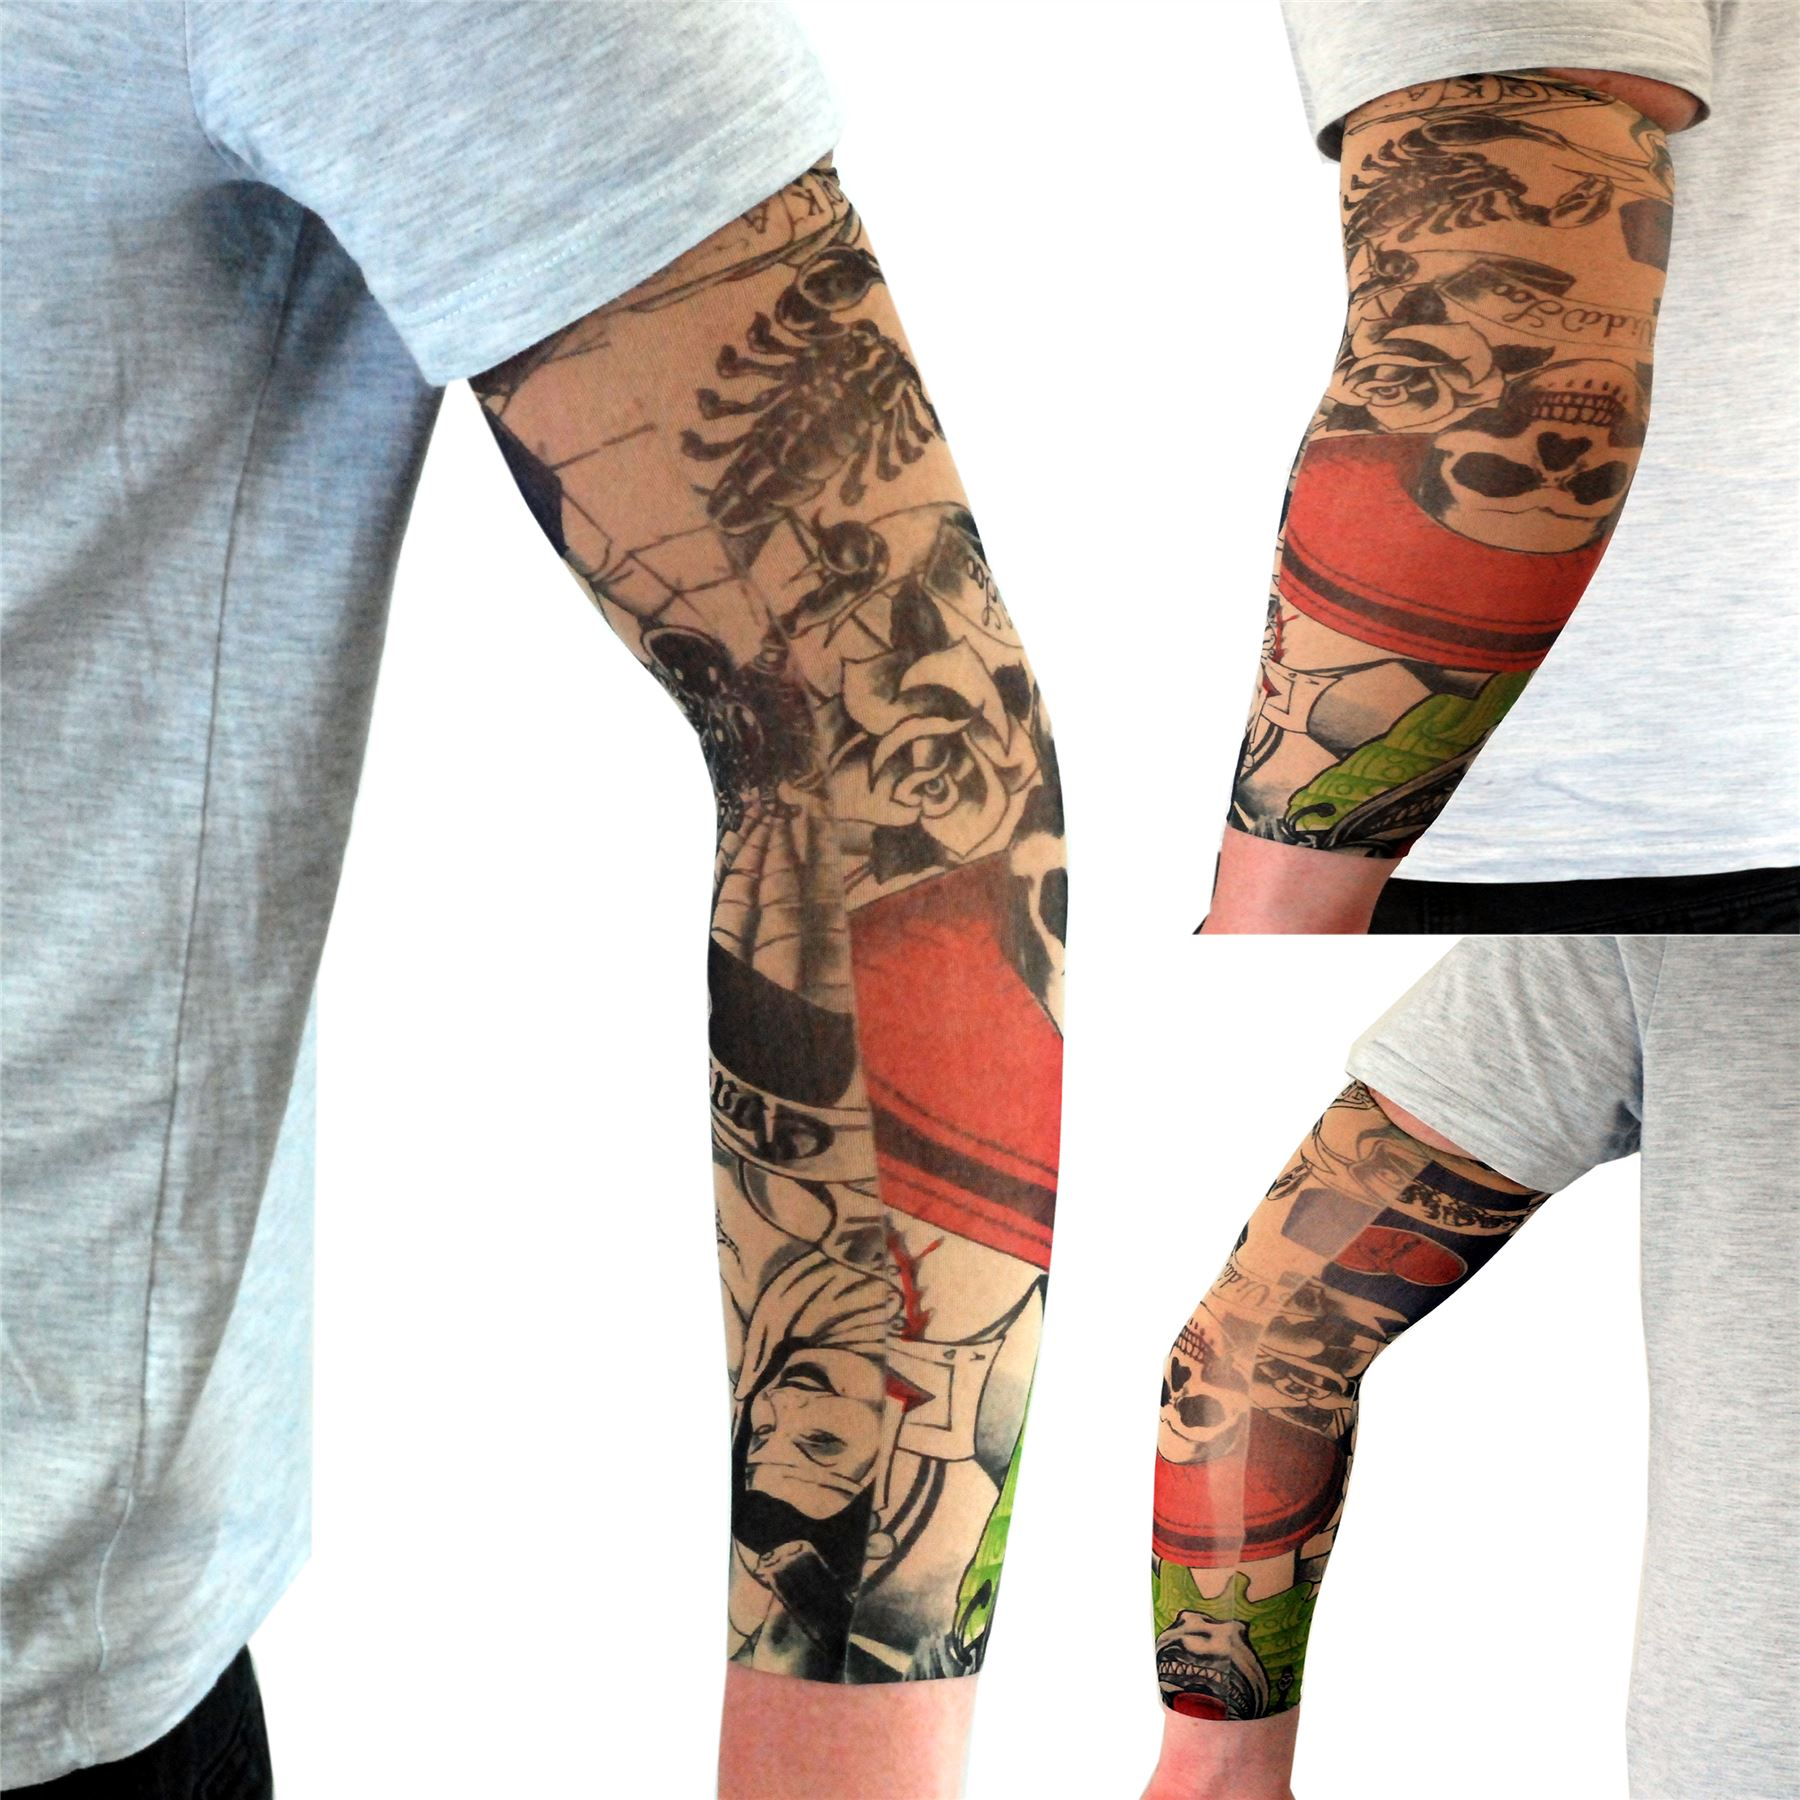 nylon stretch fake tattoo sleeves arms fancy dress party